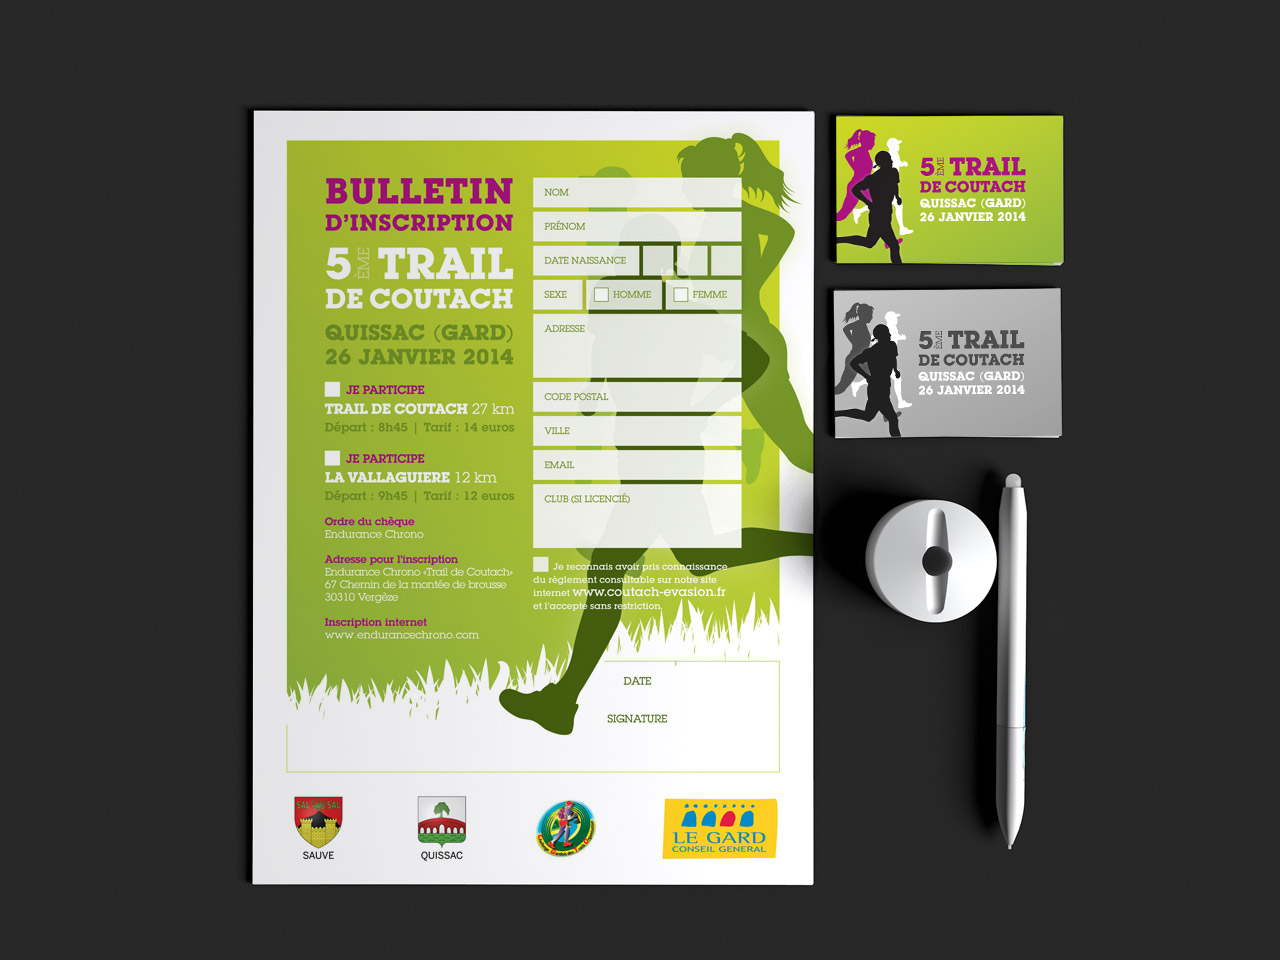 trail-de-coutach-bulletin-creation-communication-caconcept-alexis-cretin-graphiste